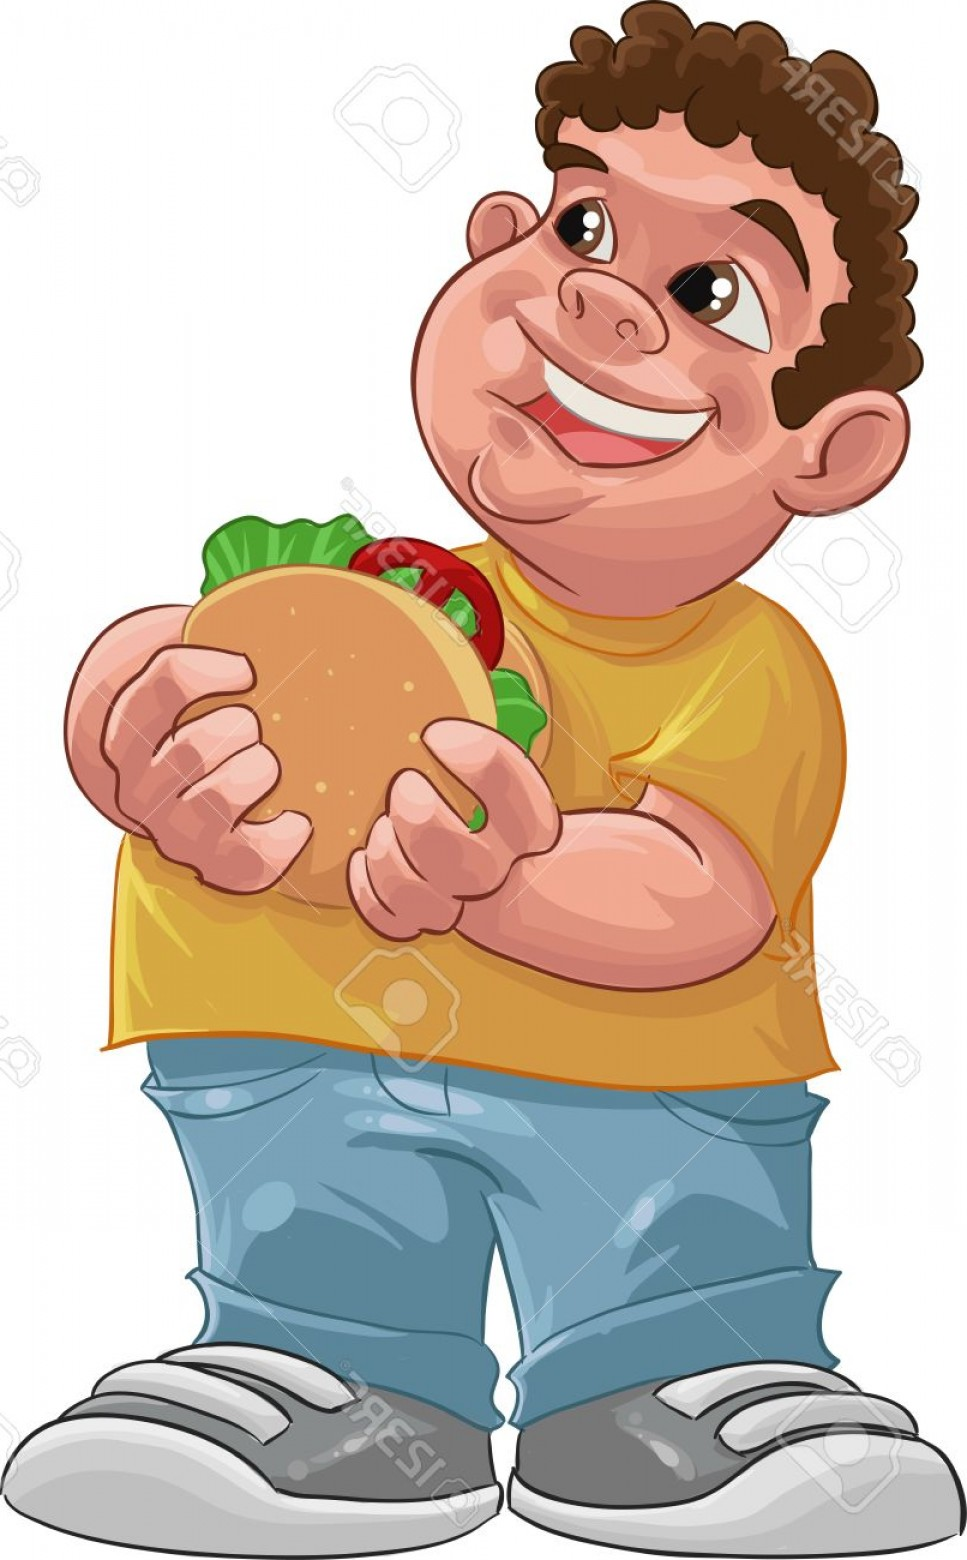 Fat Boy Logo Vector Art: Photofat Boy Smiling And Ready To Eat A Big Hamburger